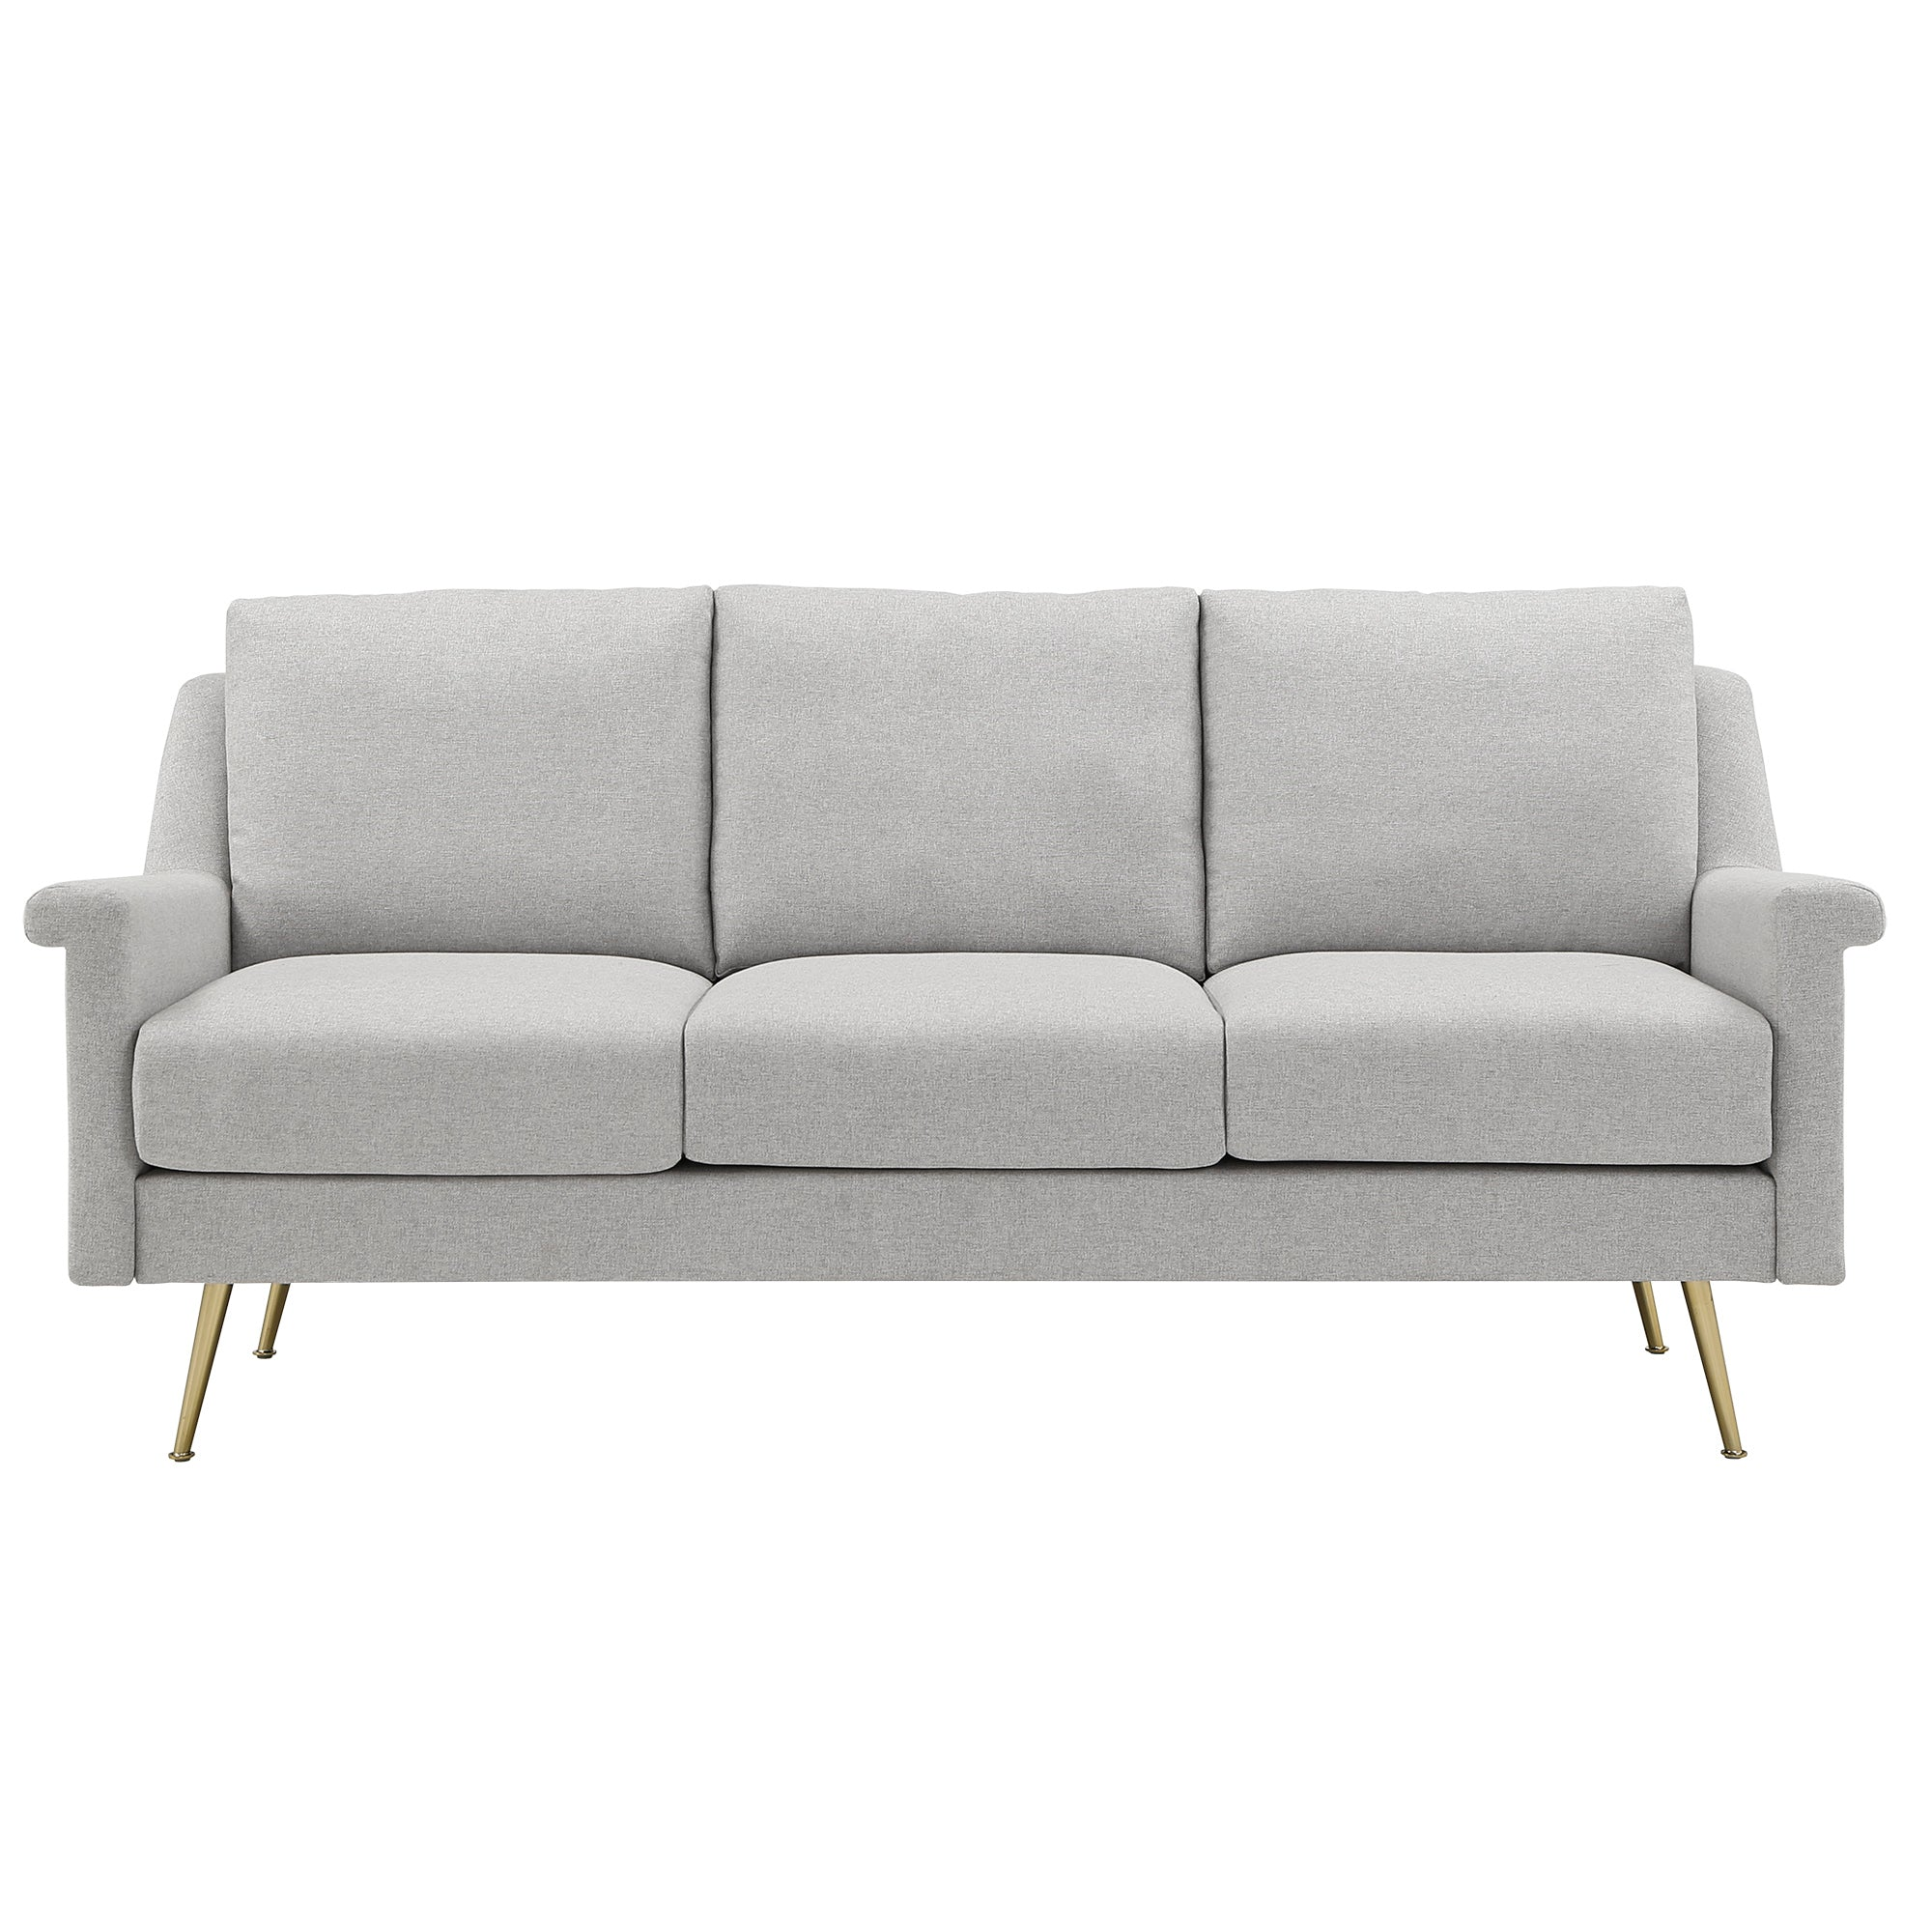 Grey Fabric Sofa with Gold Metal Legs